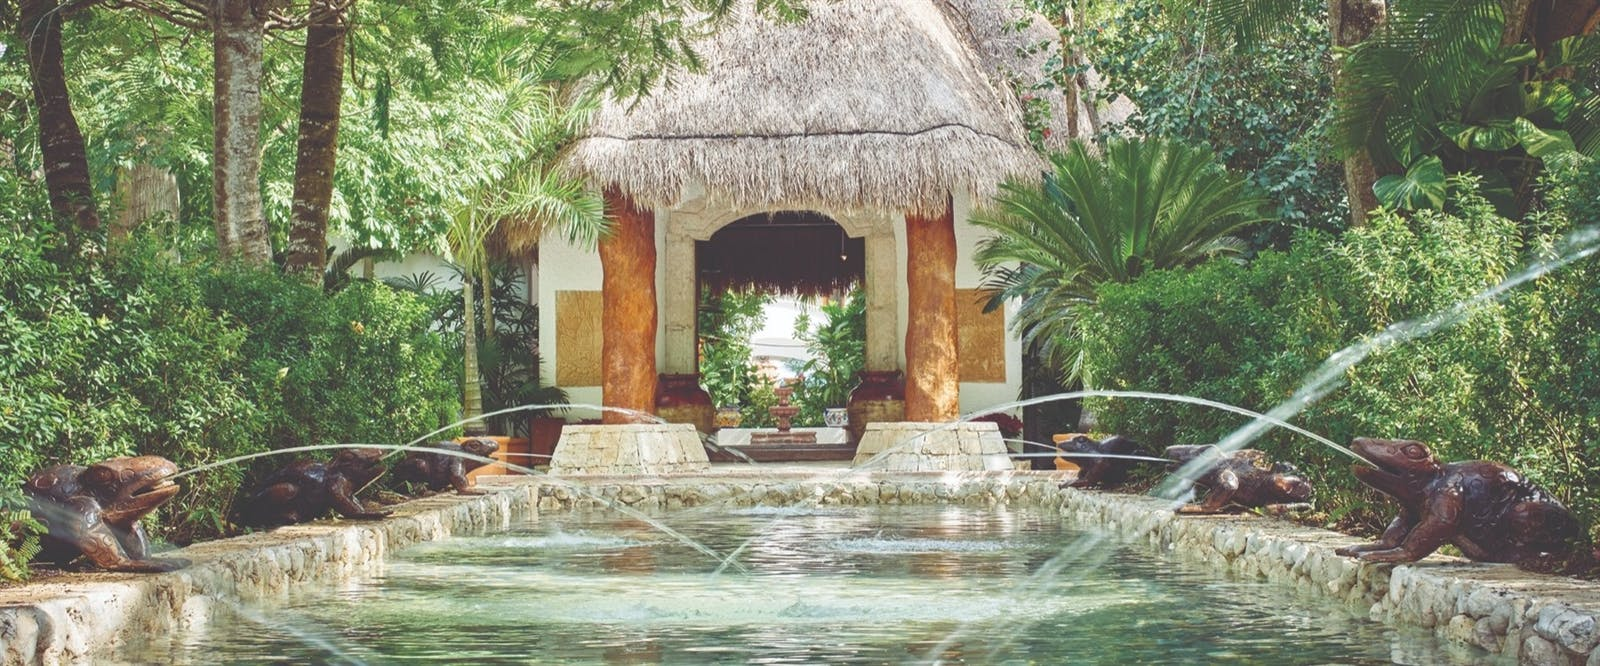 Belmond Maroma Resort & Spa, Riviera Maya, Mexico